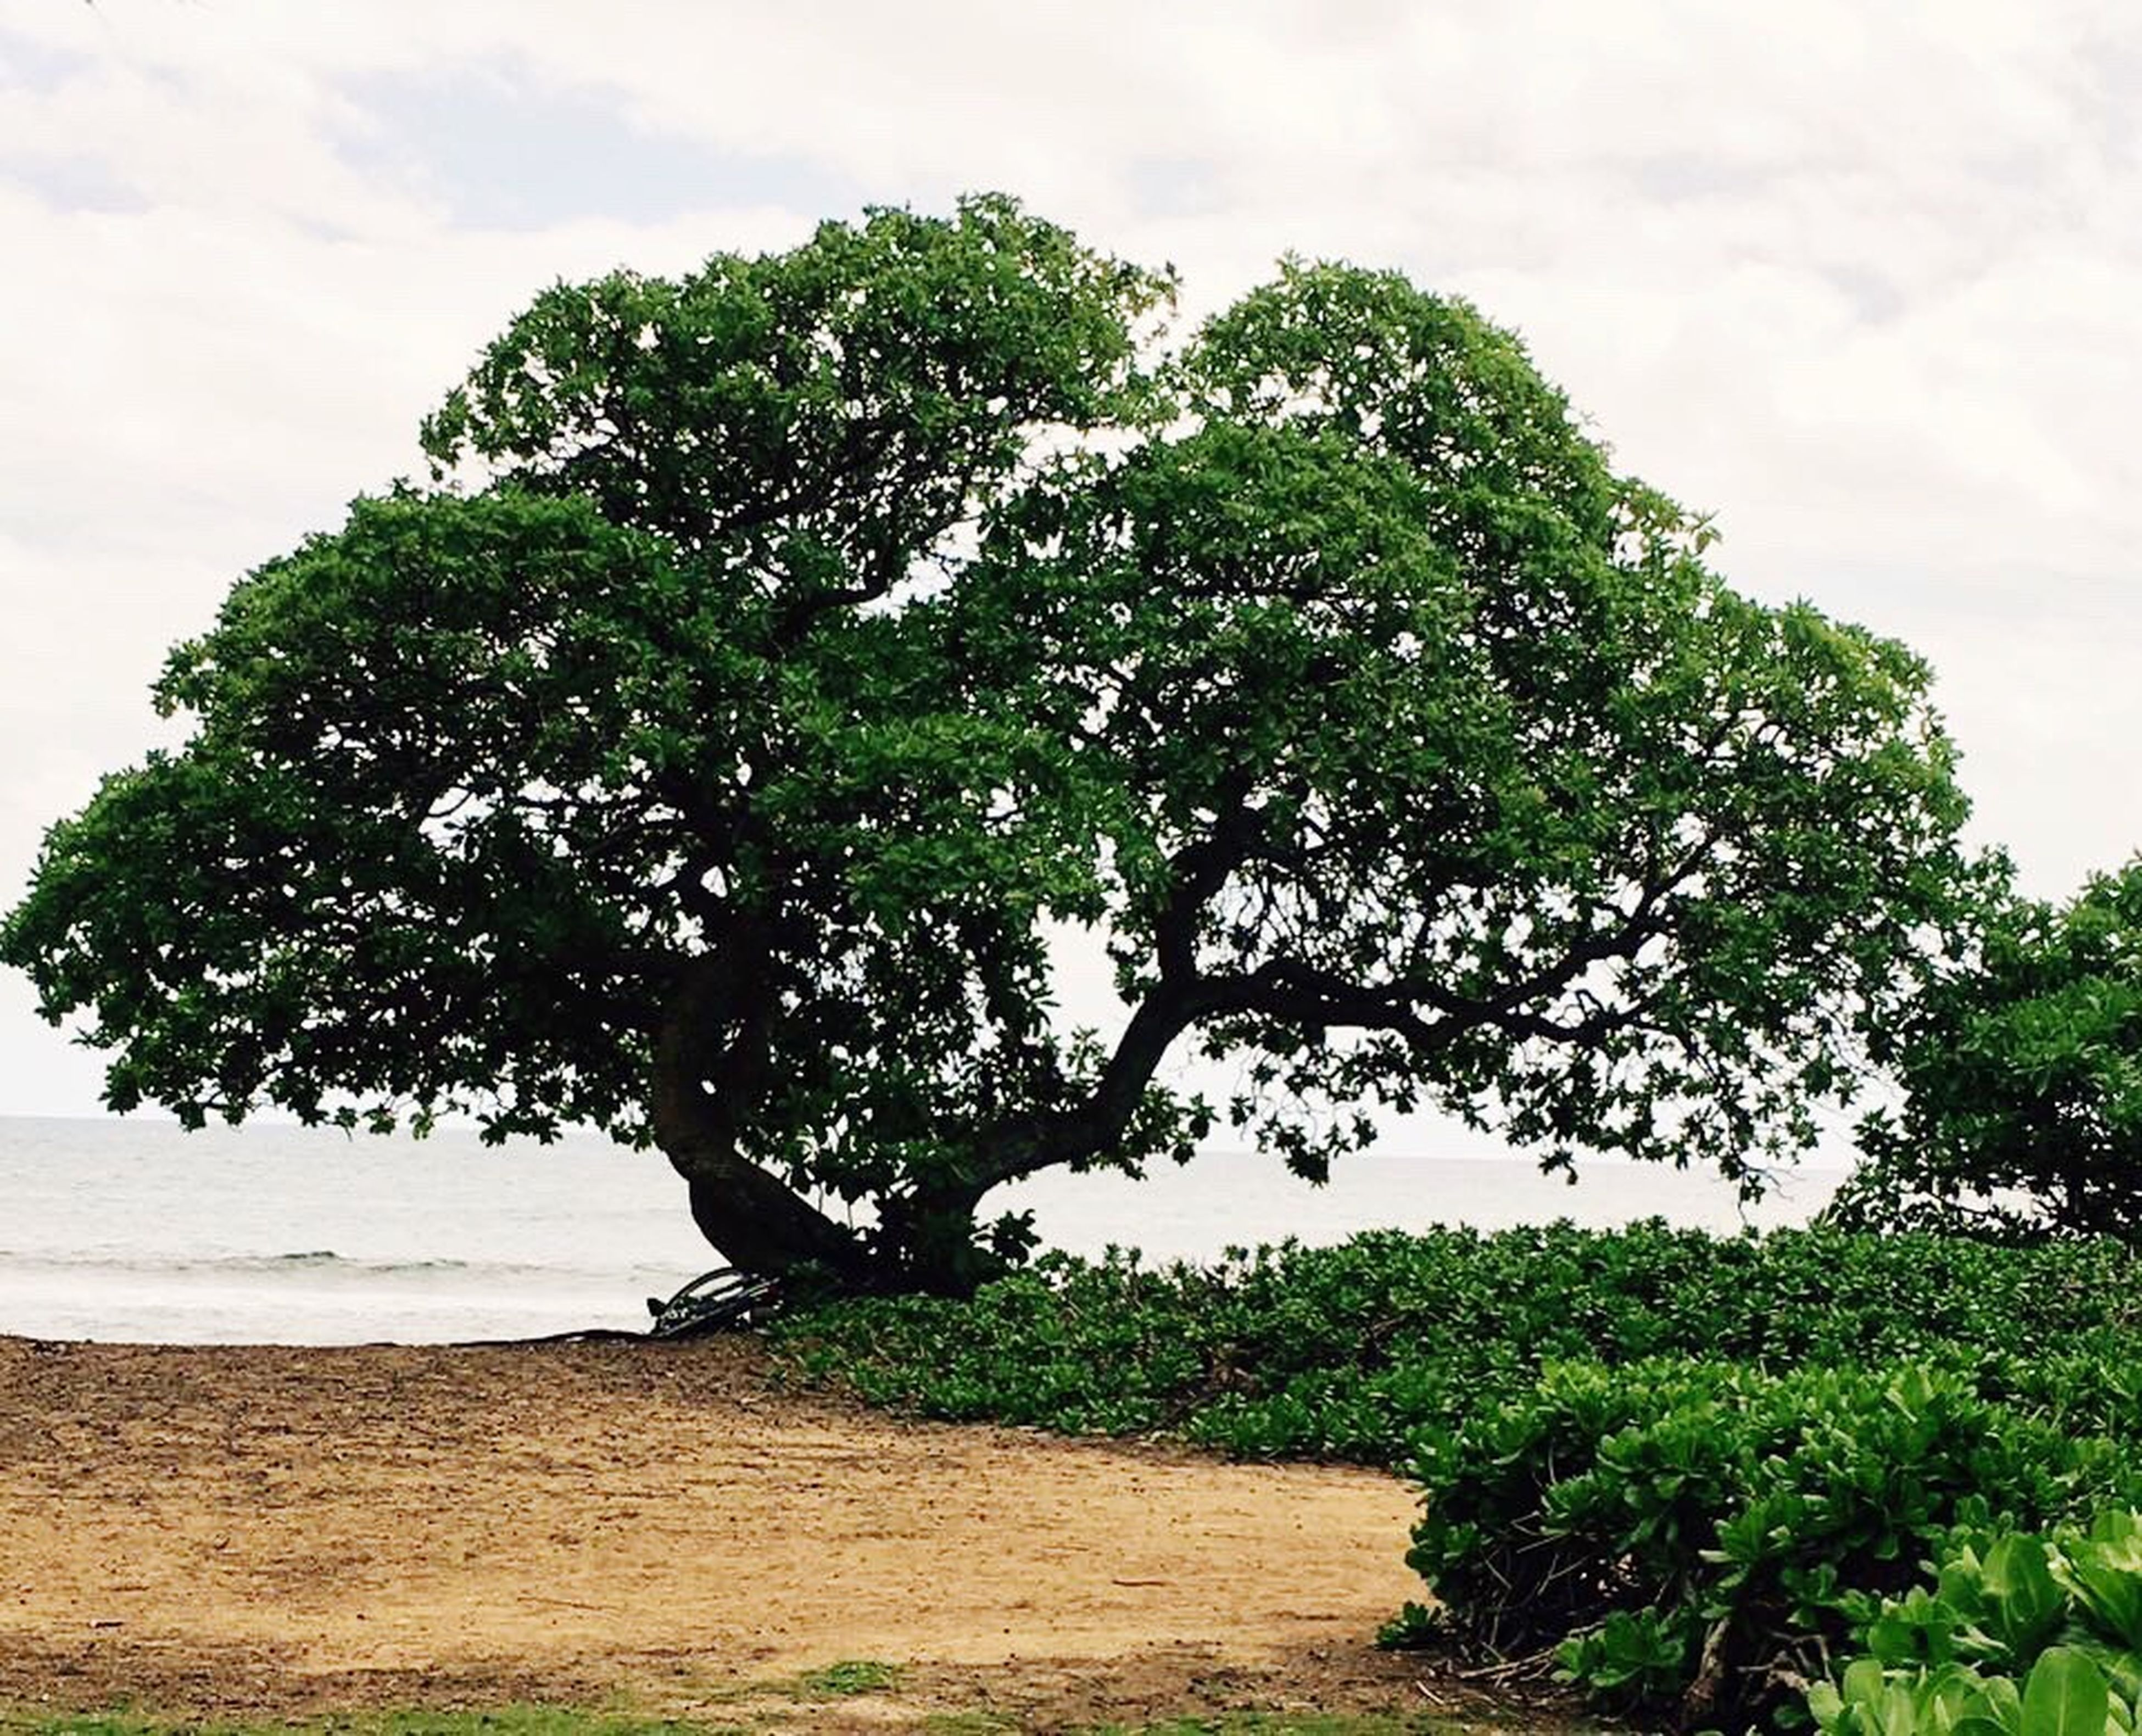 tree, nature, social issues, landscape, environmental conservation, outdoors, no people, food, beach, day, sky